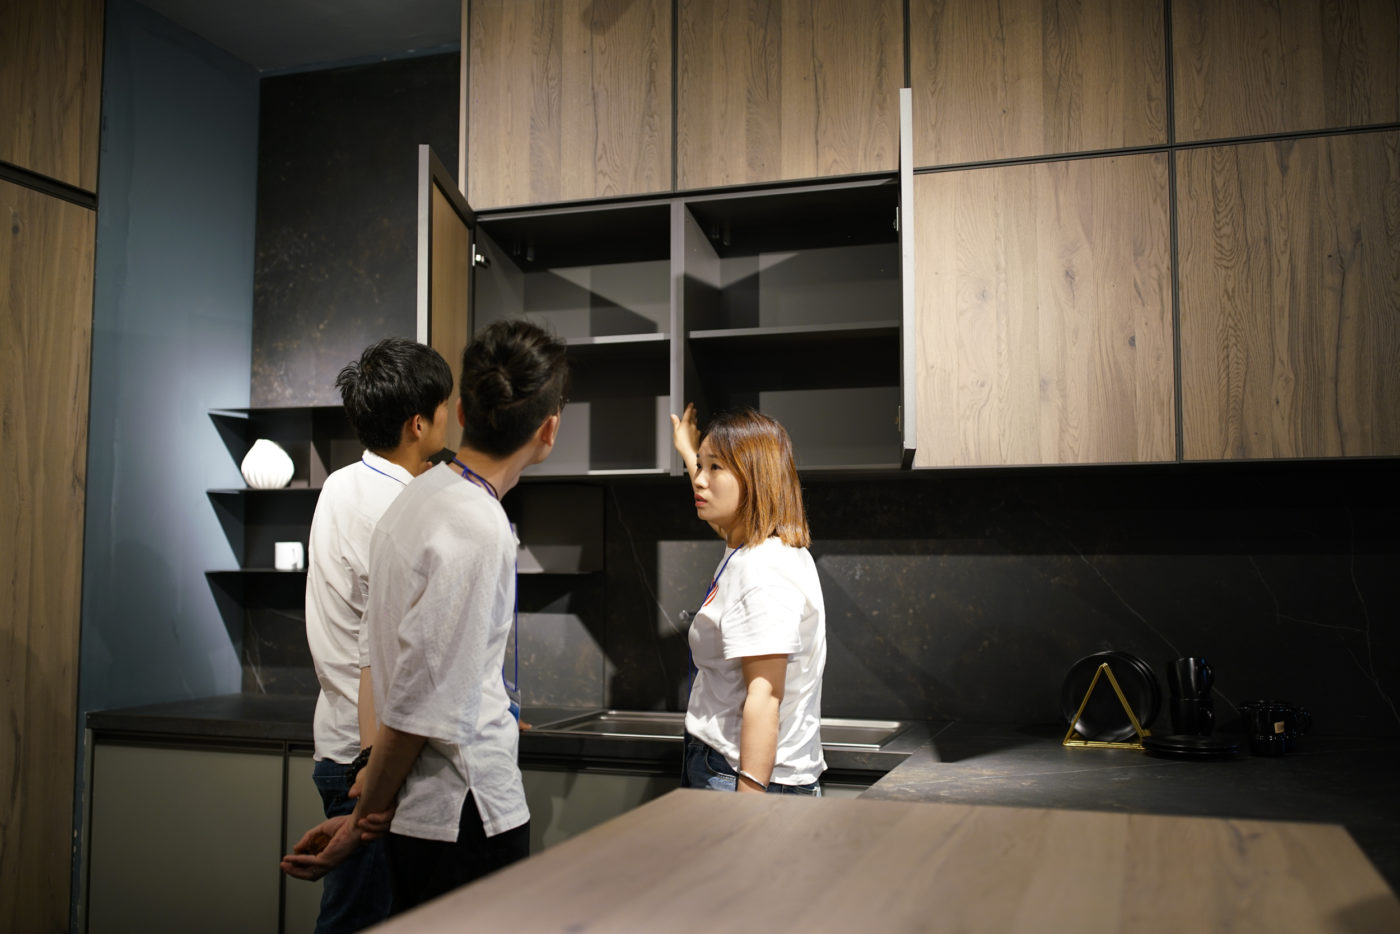 Grand succès pour Arredo3 au Kitchen & Bath 2019 Chine - 6